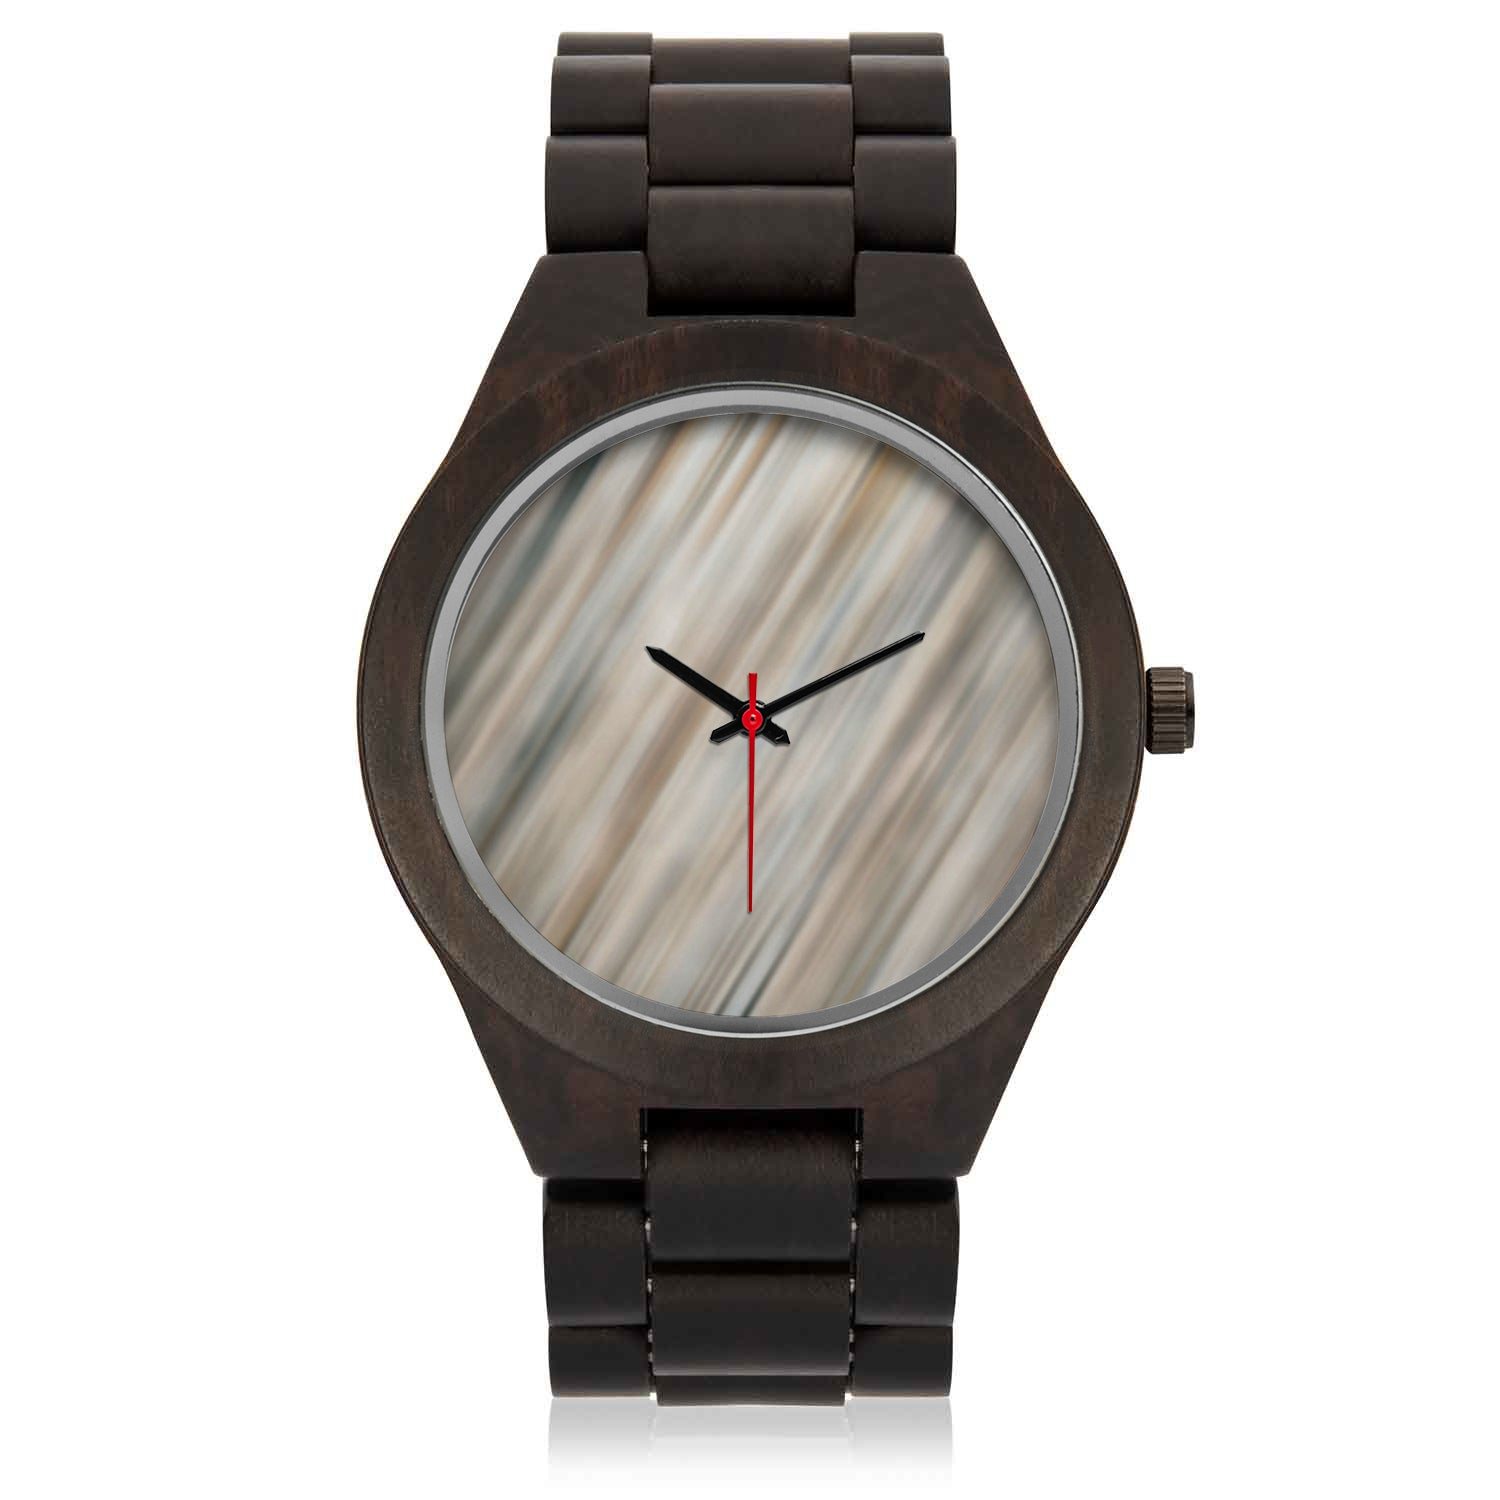 Engraved Wood Watch | Stripe Wood Face